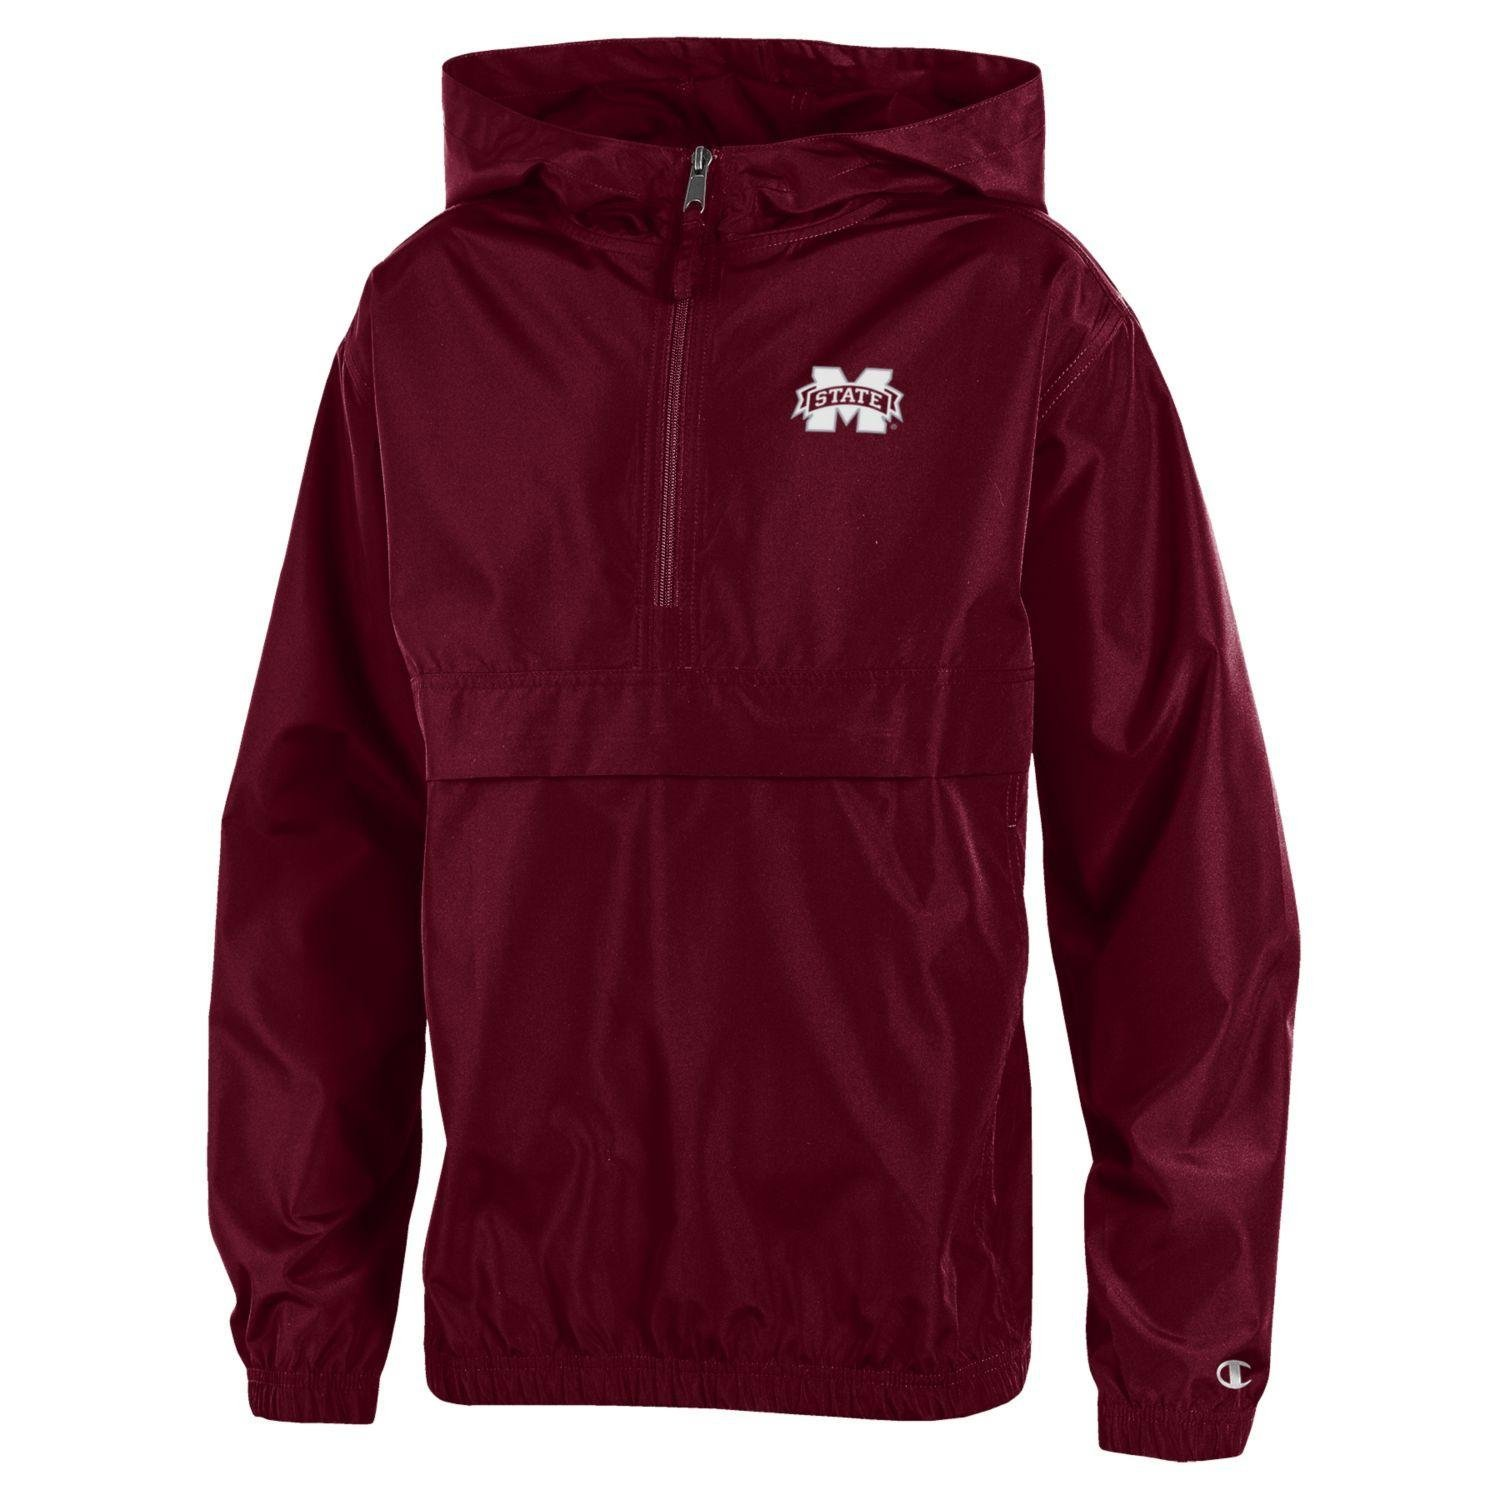 NCAA Mississippi State Bulldogs Men's Pack & Go Jacket, X-Large, Maroon by Gear for Sports, Inc.